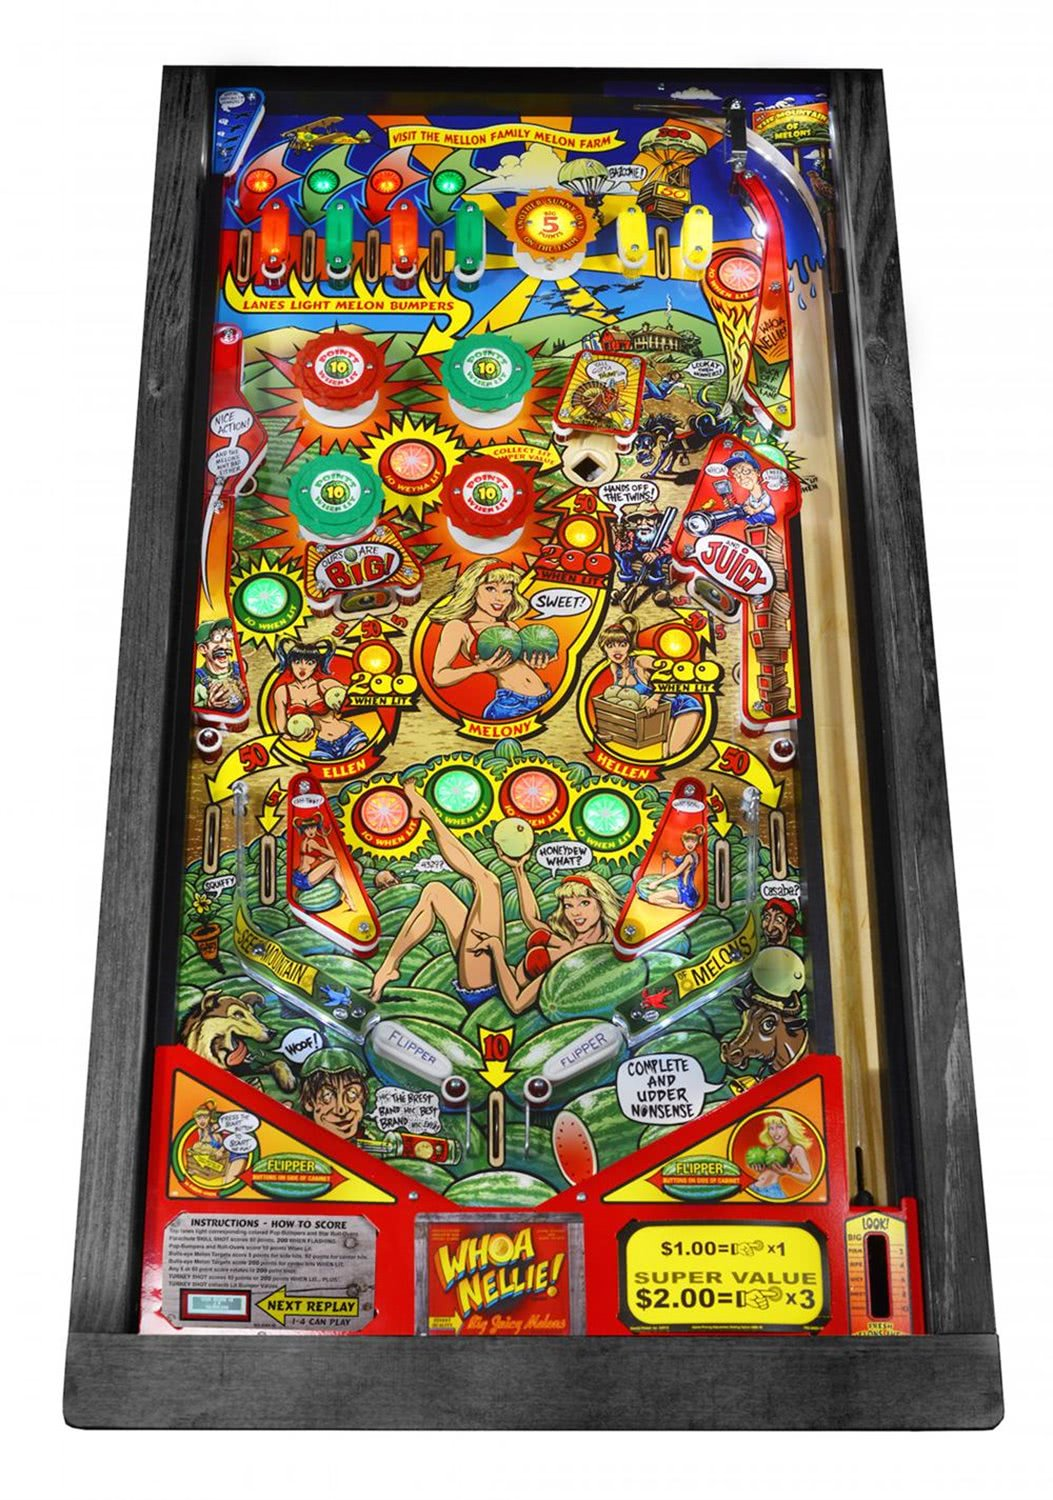 Stern Whoa Nellie Pinball Machine Liberty Games